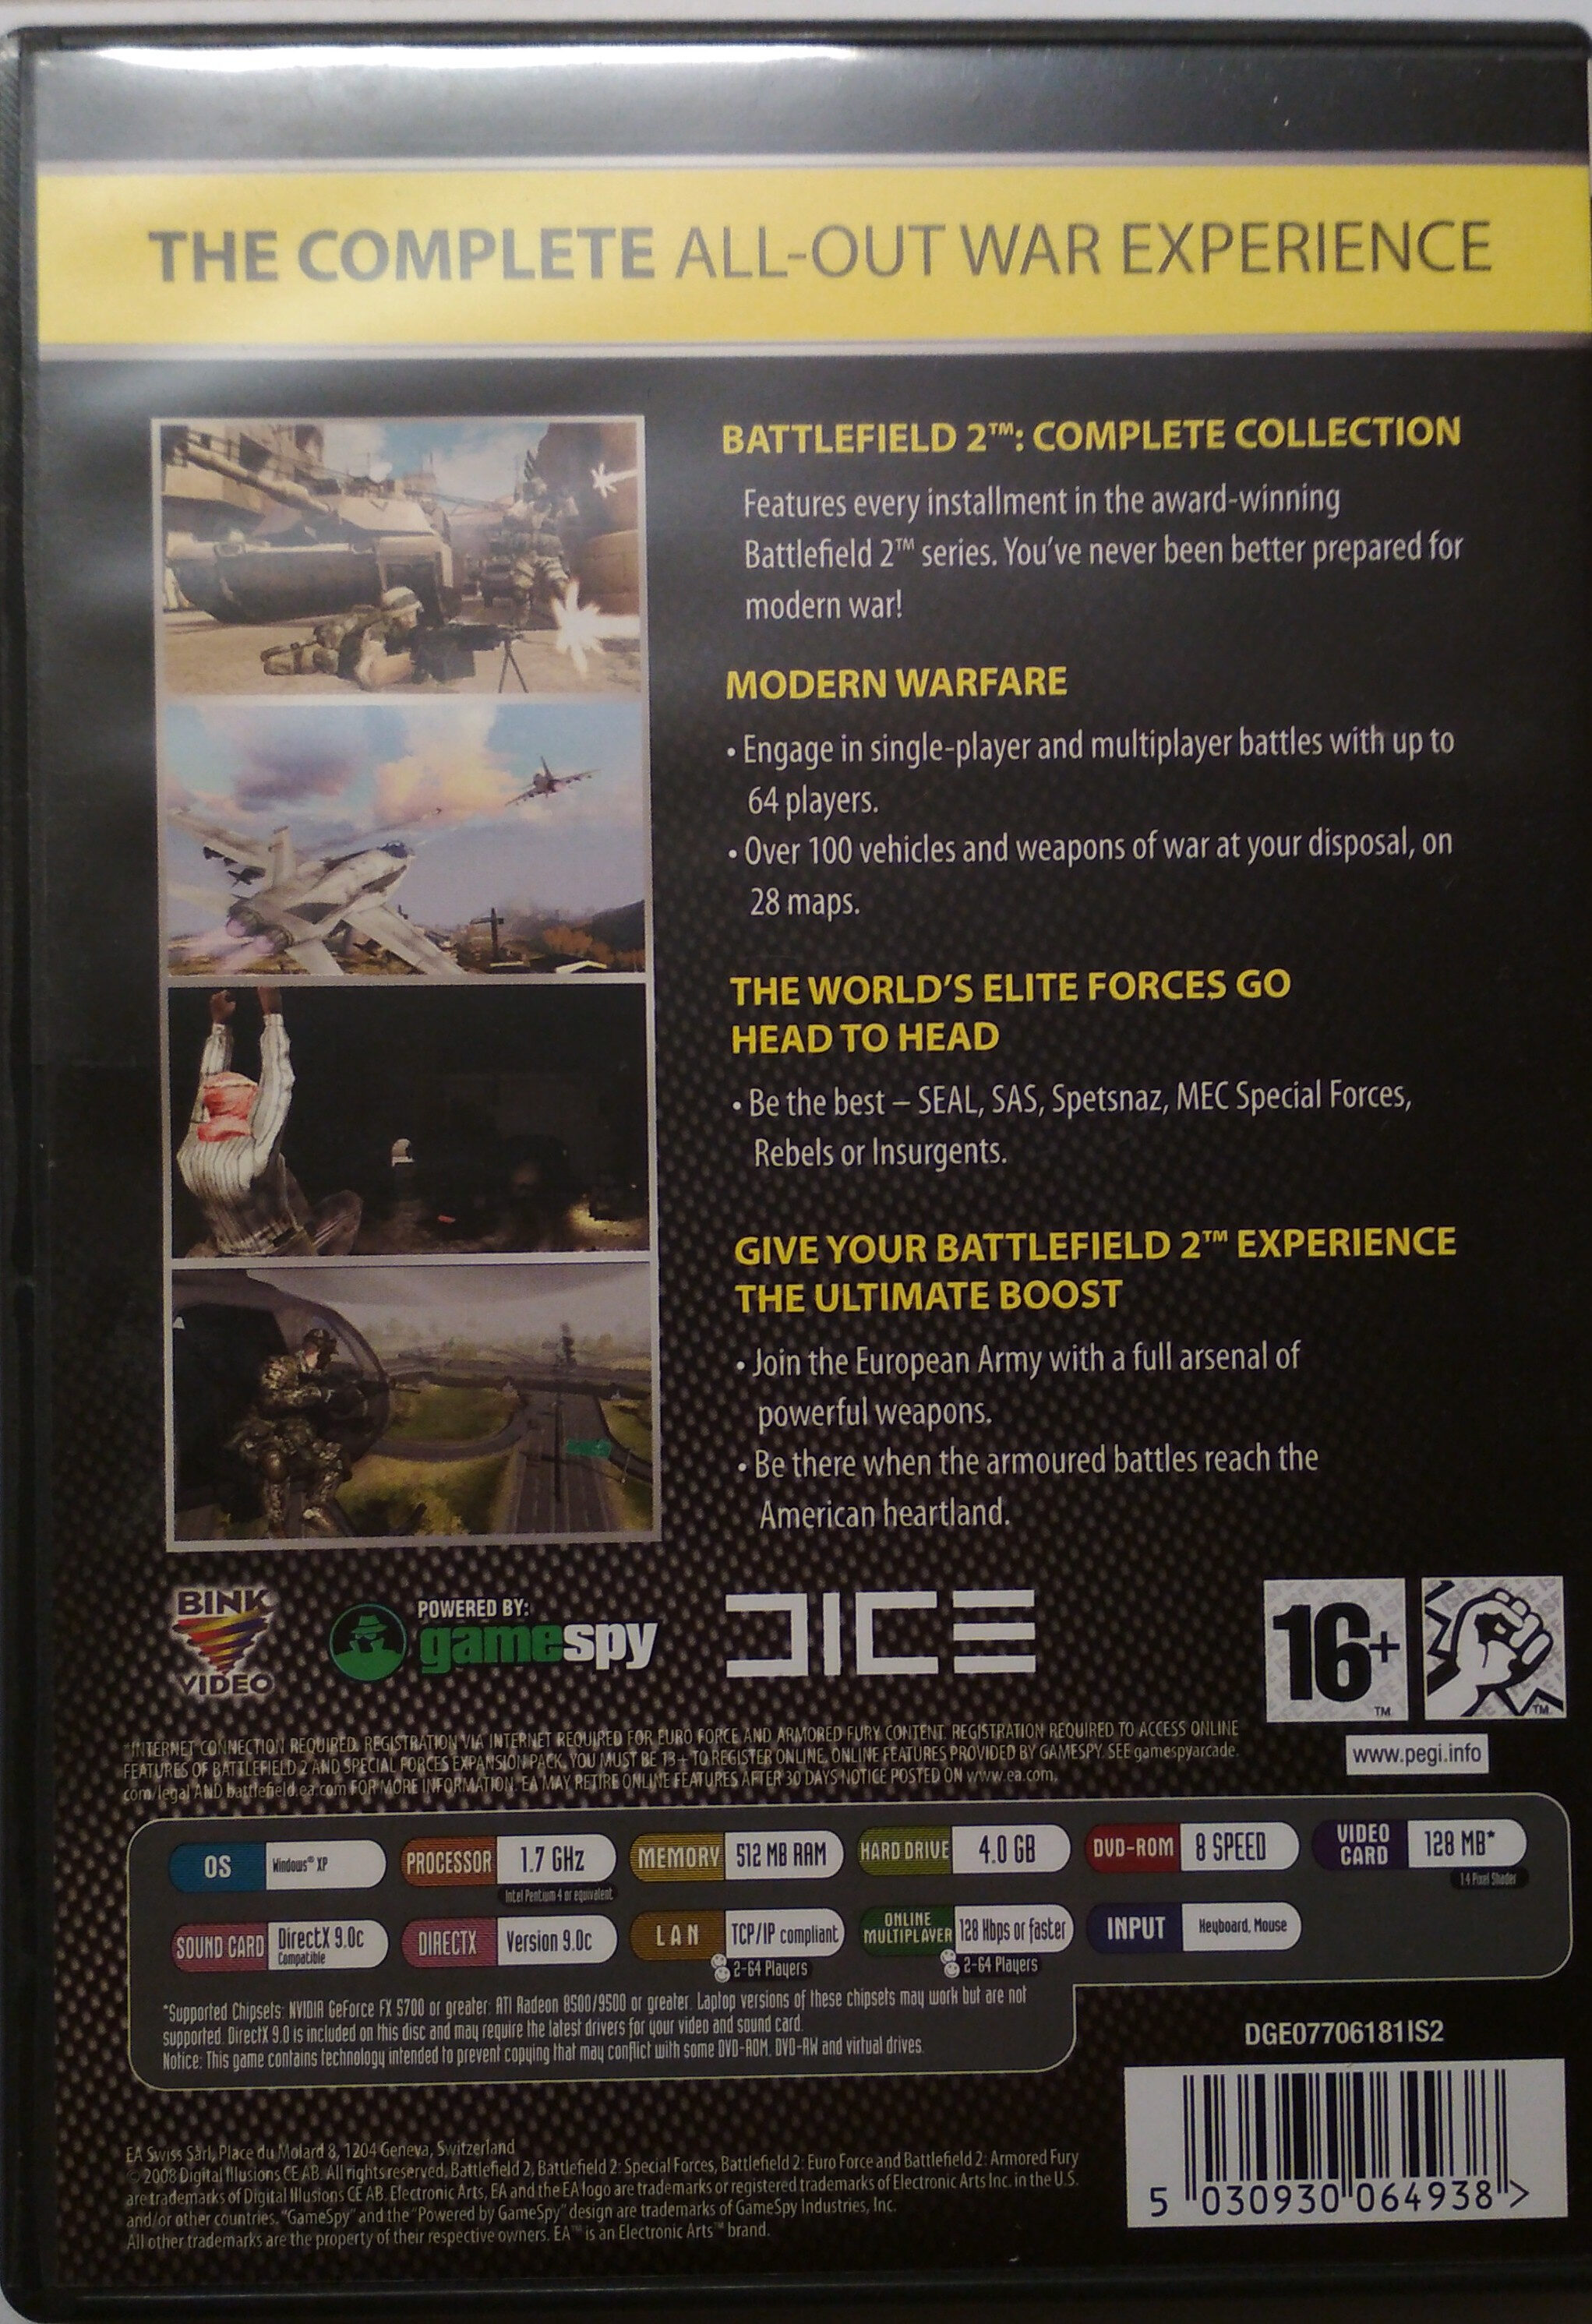 Battlefield 2 Complete Collection - Ingredients